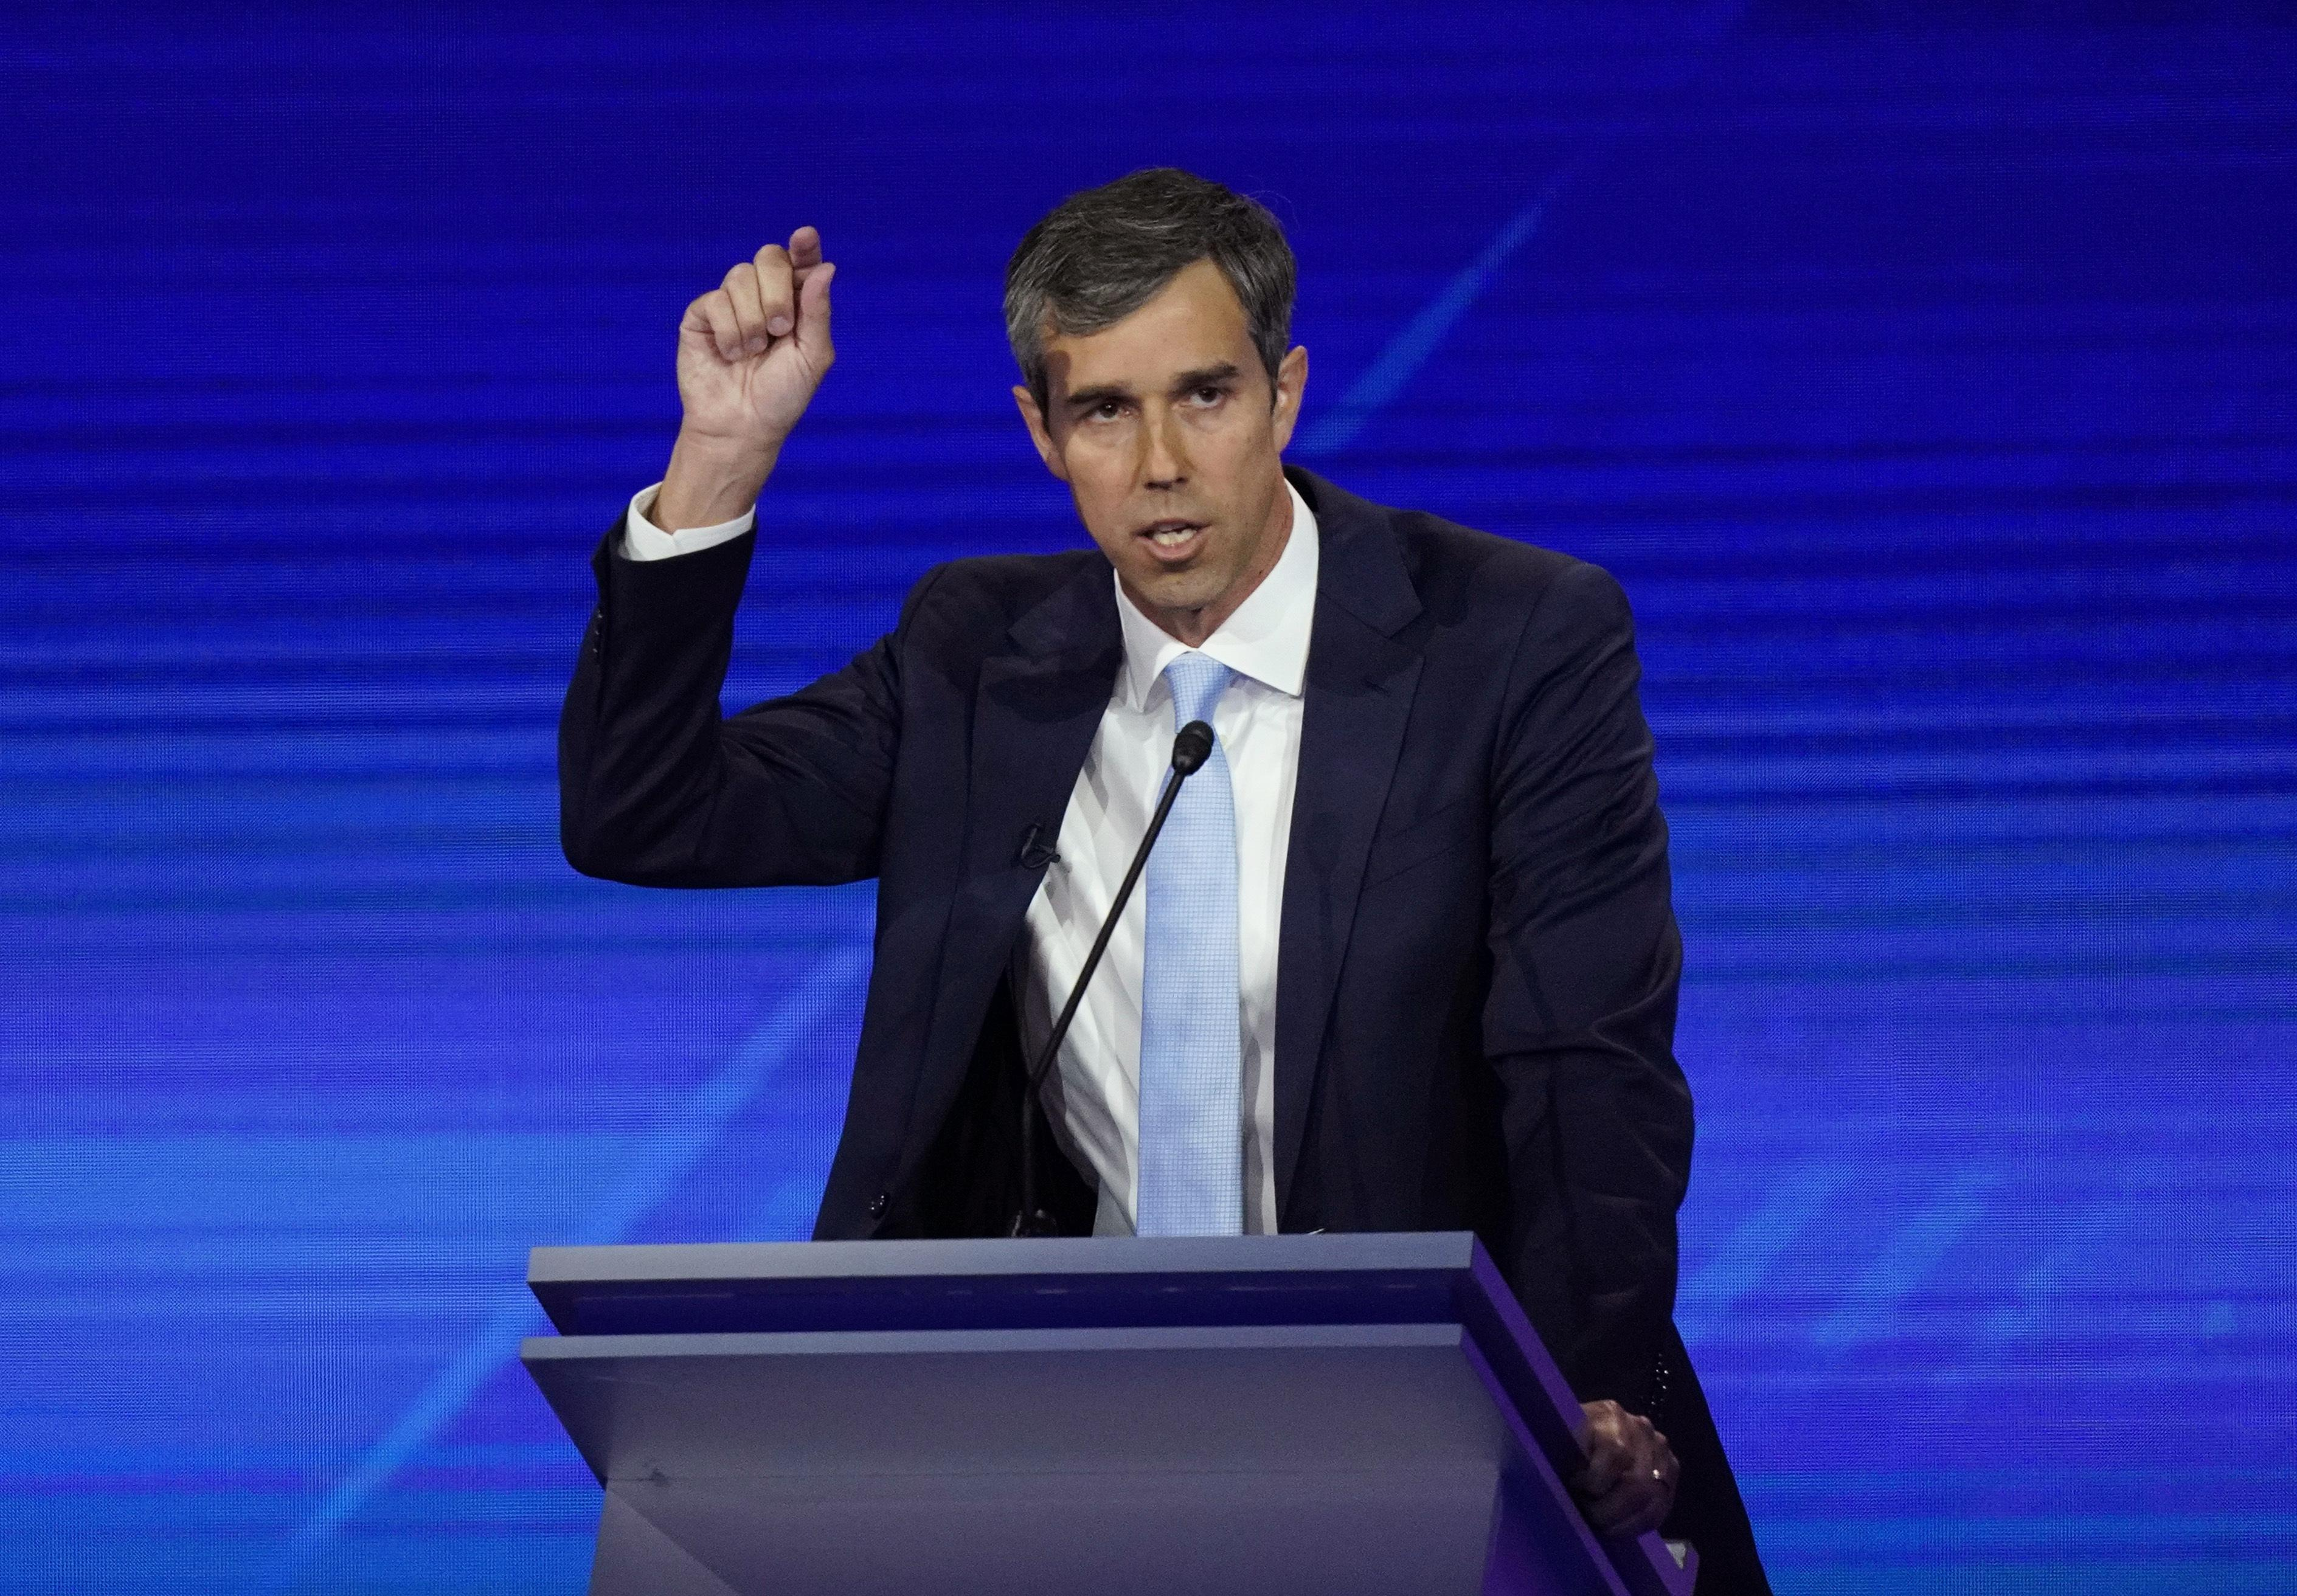 Woman confronts Beto O'Rourke on gun confiscation plan: 'Hell no, you're not'